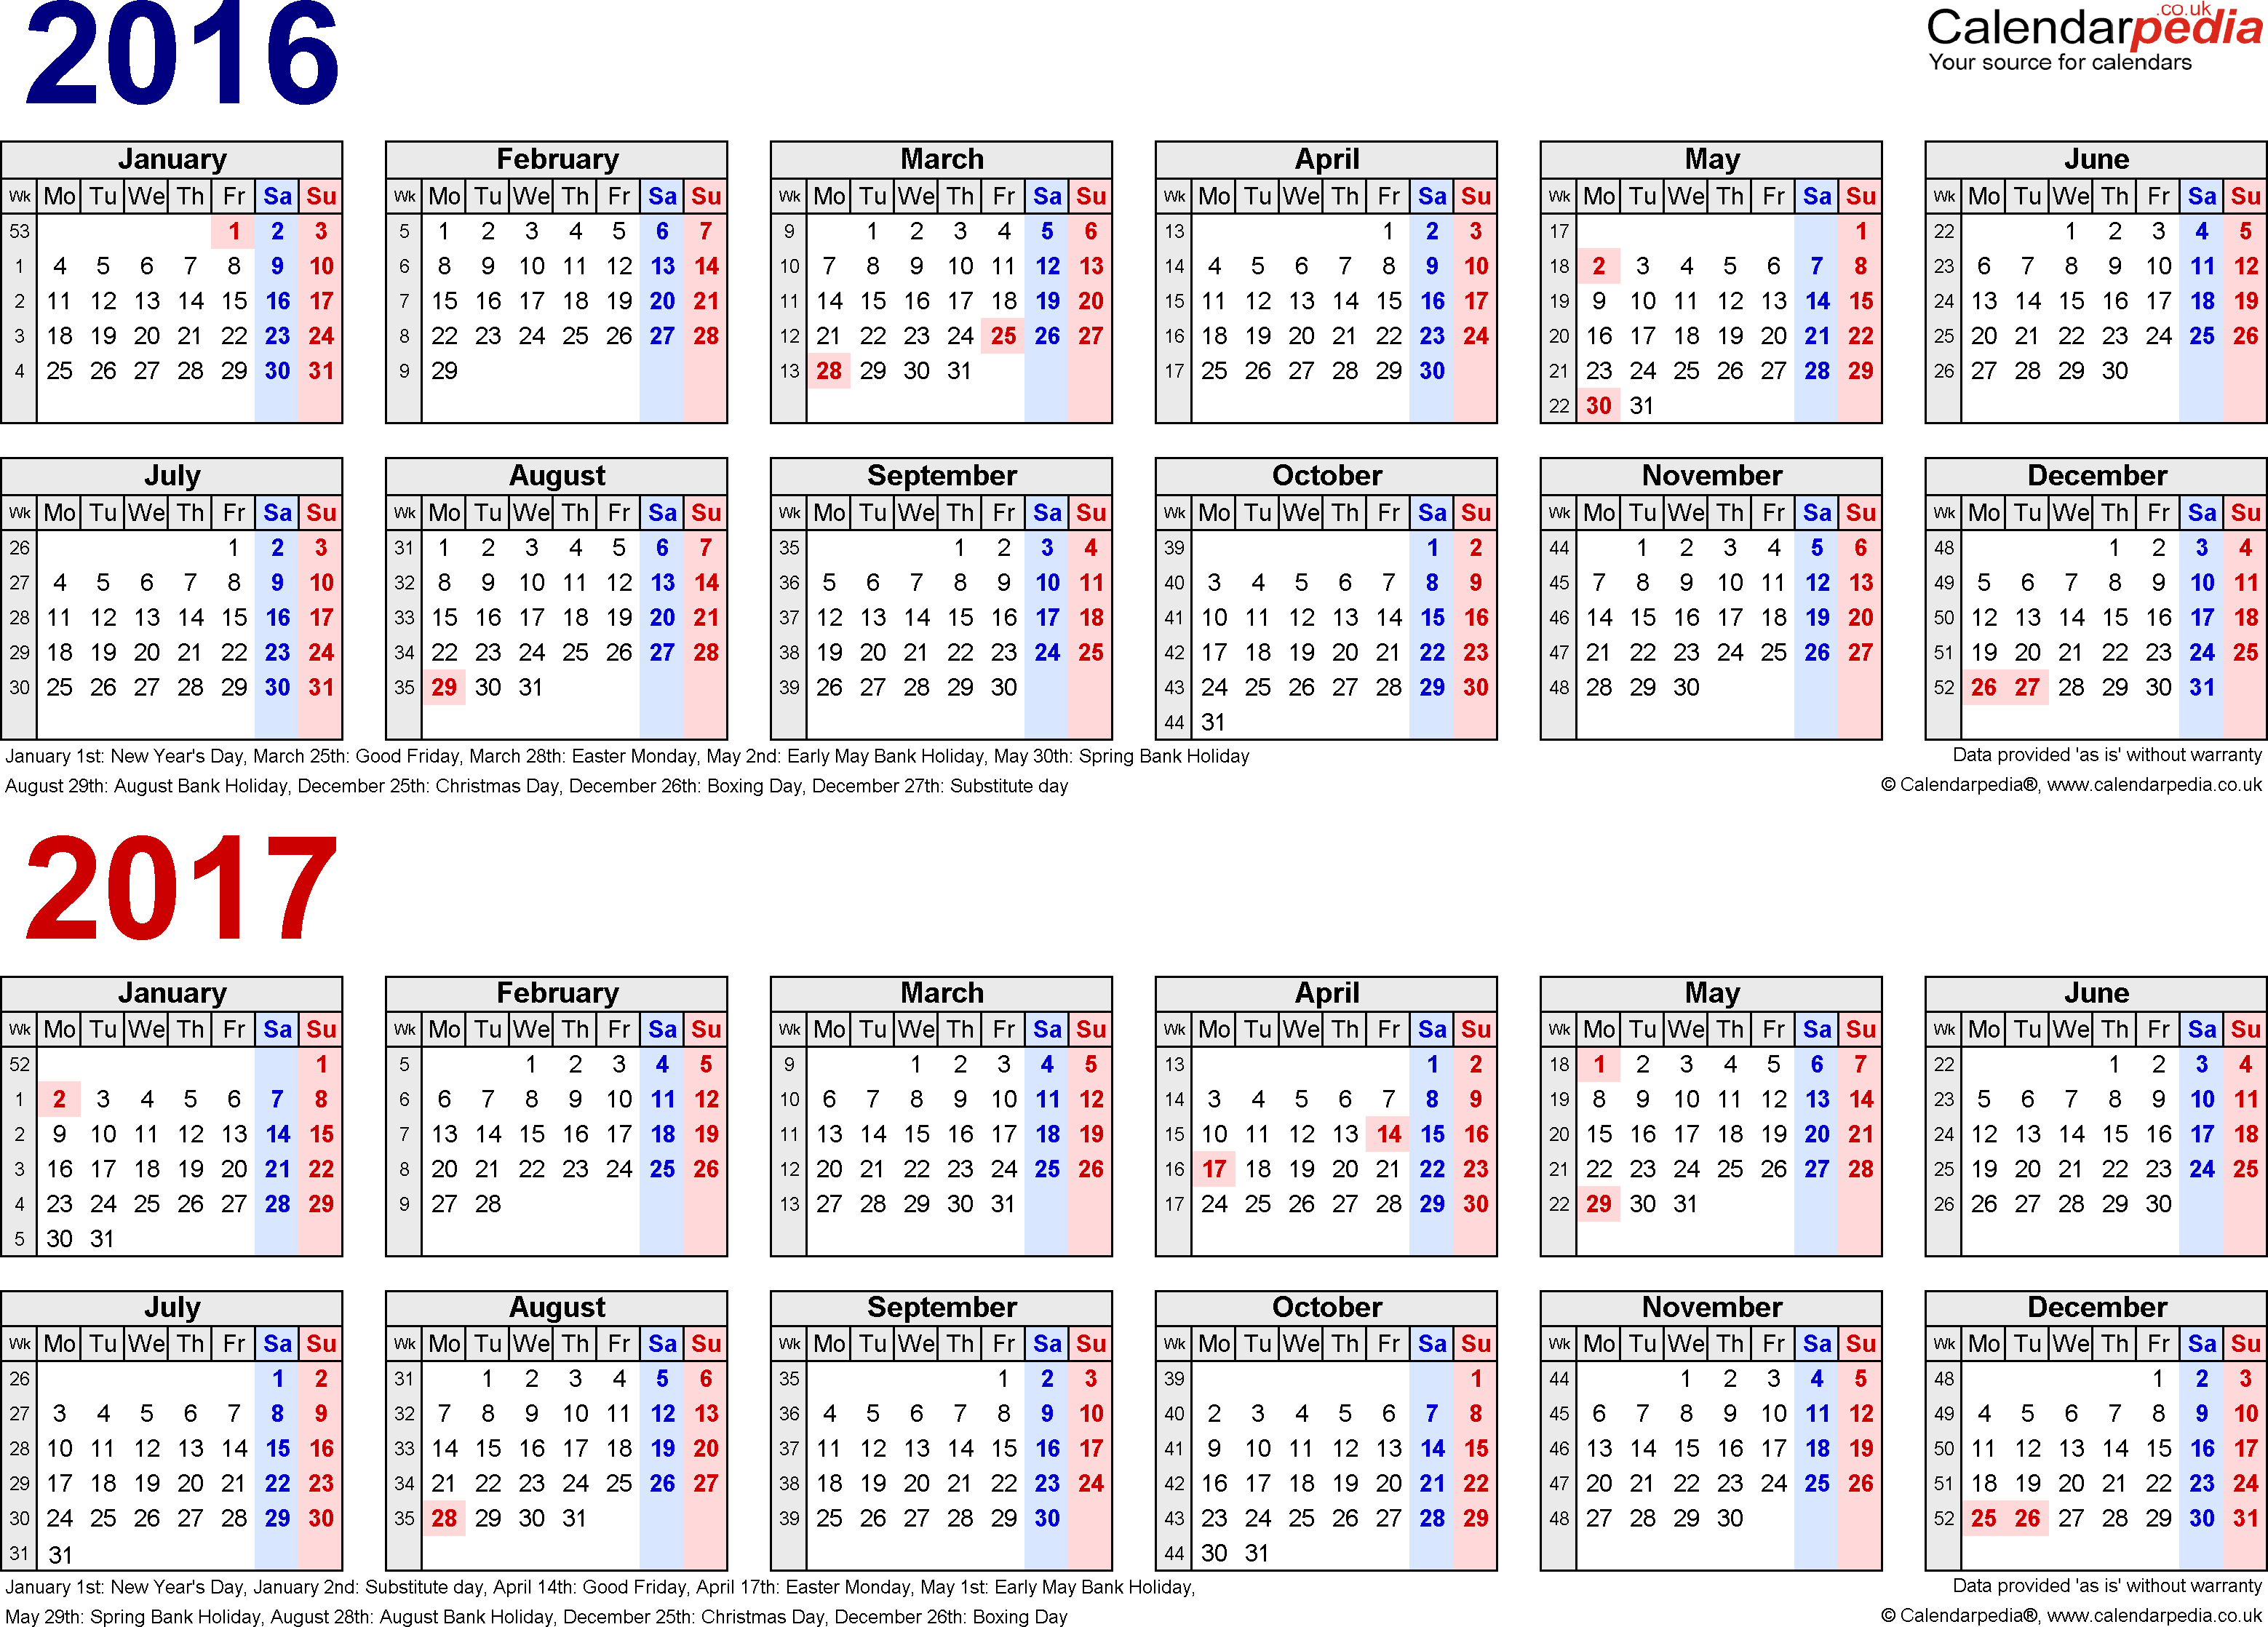 Yearly Calendar 2016 As Word Template Landscape Orientation 1 Page ...